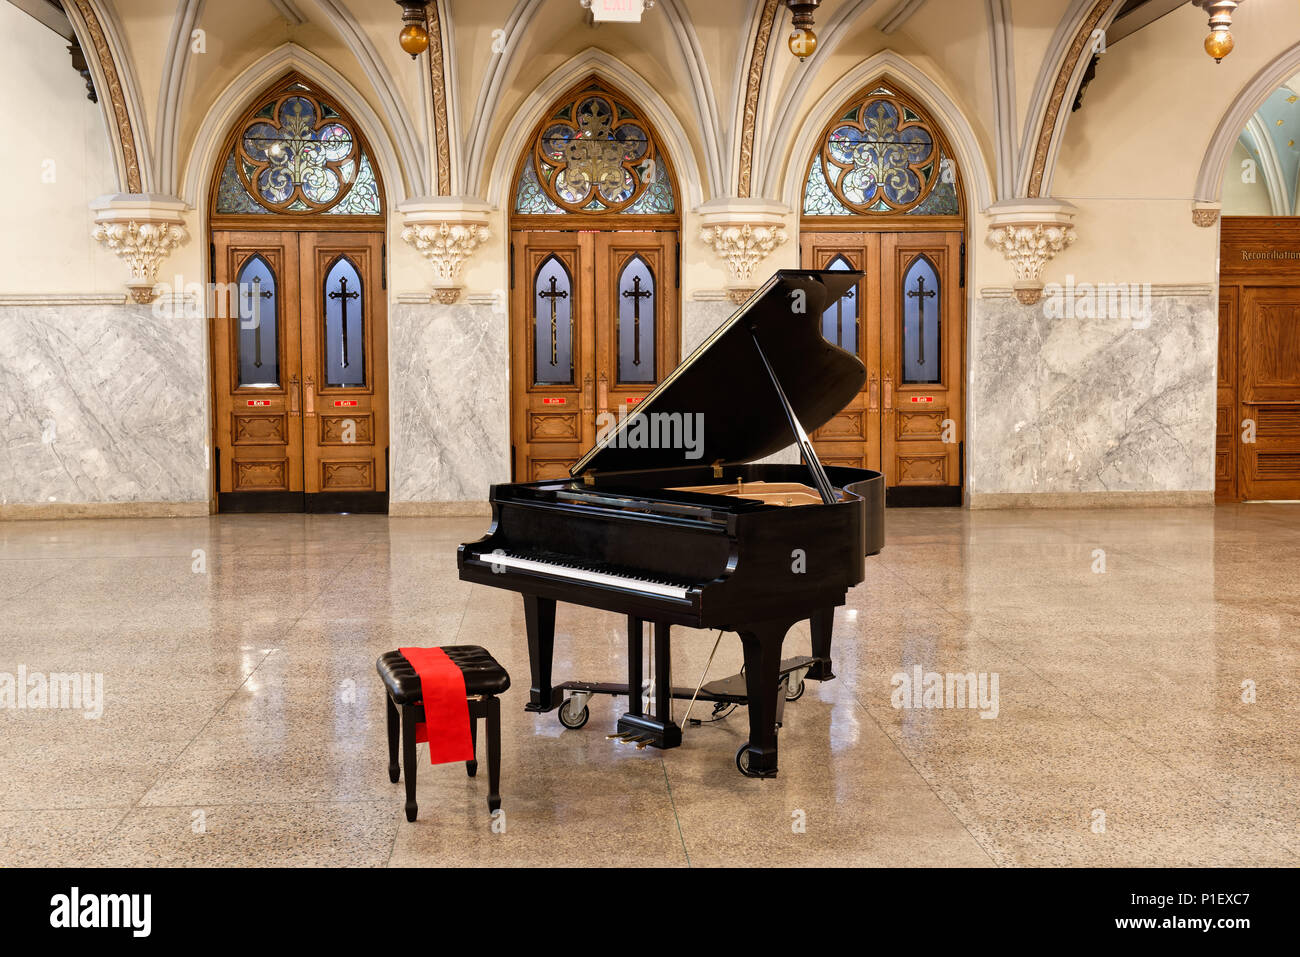 Baby grand piano with open lid in church interior with three beautiful oak doors with stained glass behind, antique circa 1904, Pennsylvania. - Stock Image